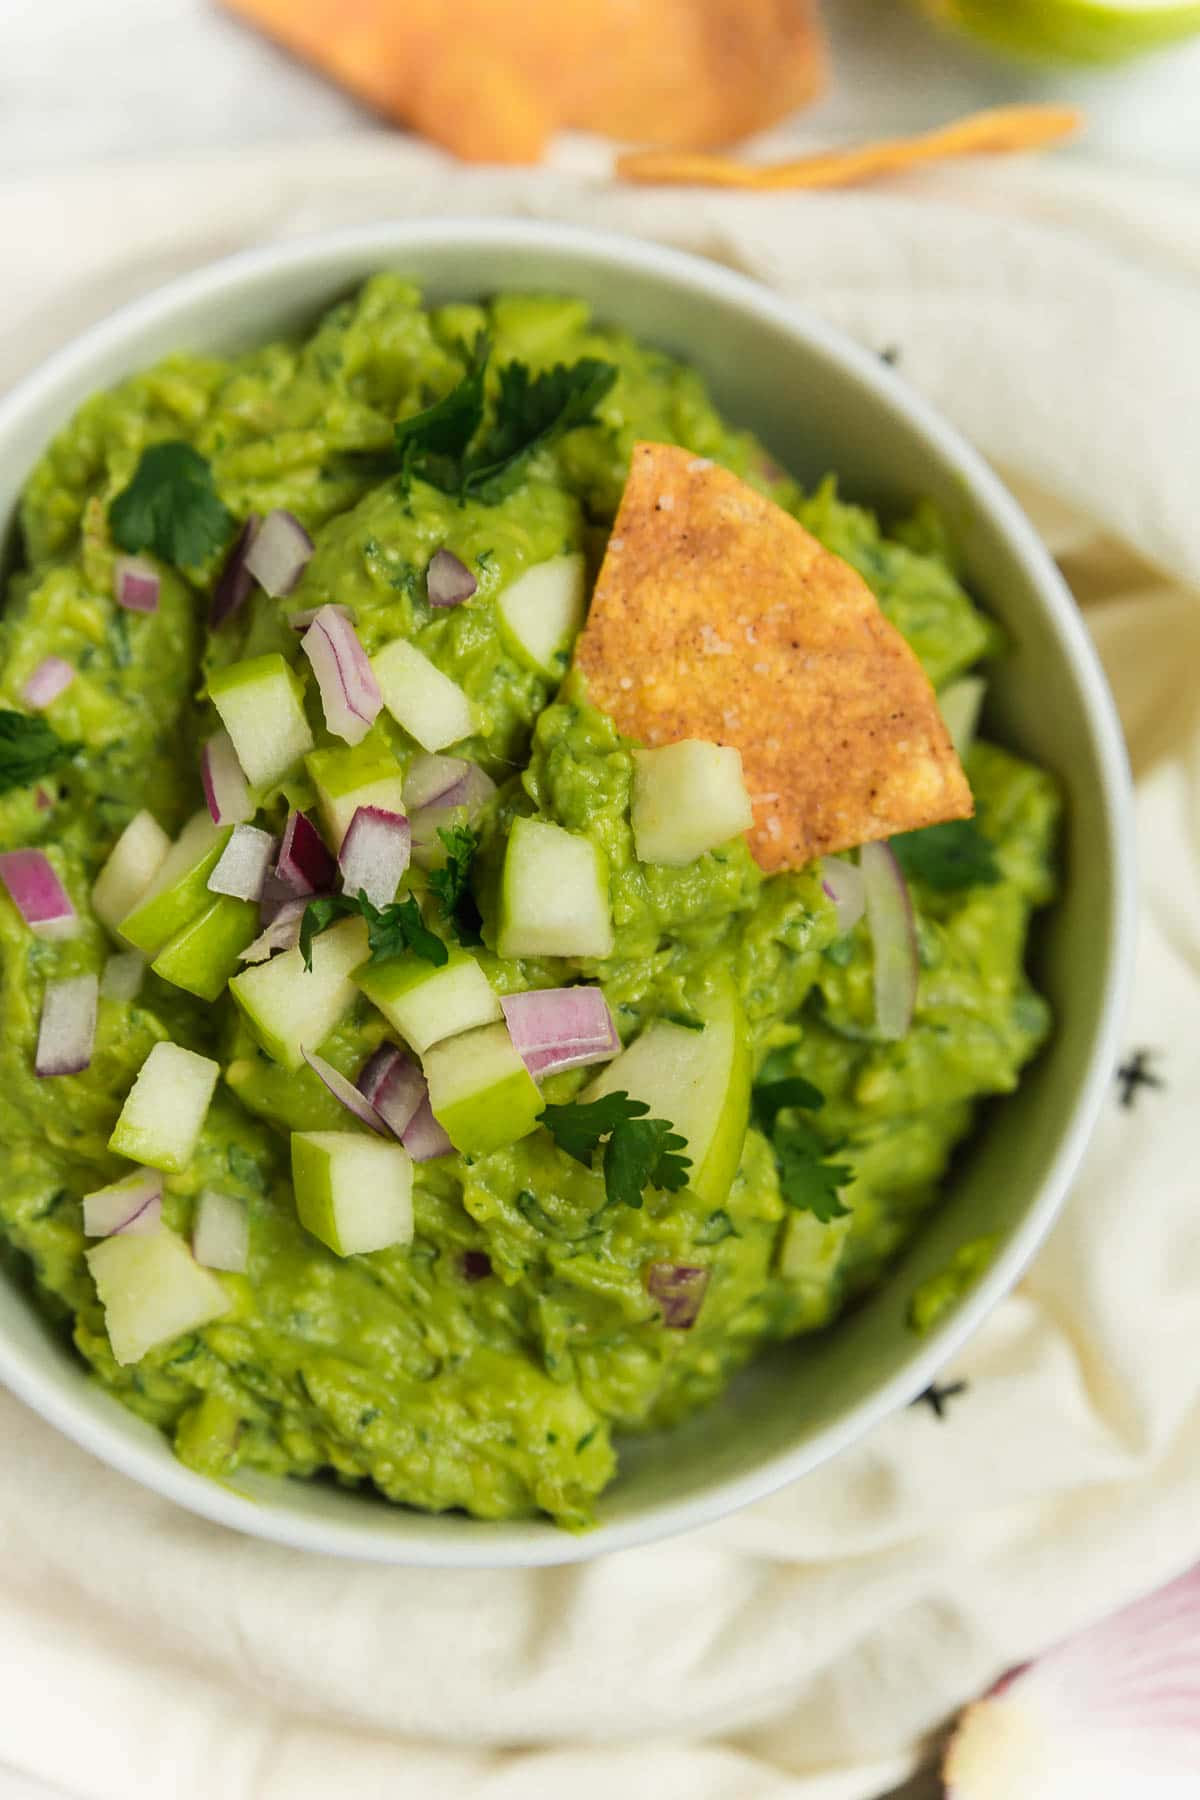 A bowl of guacamole with apple, red onion, cilantro and lime with a tortilla chip.